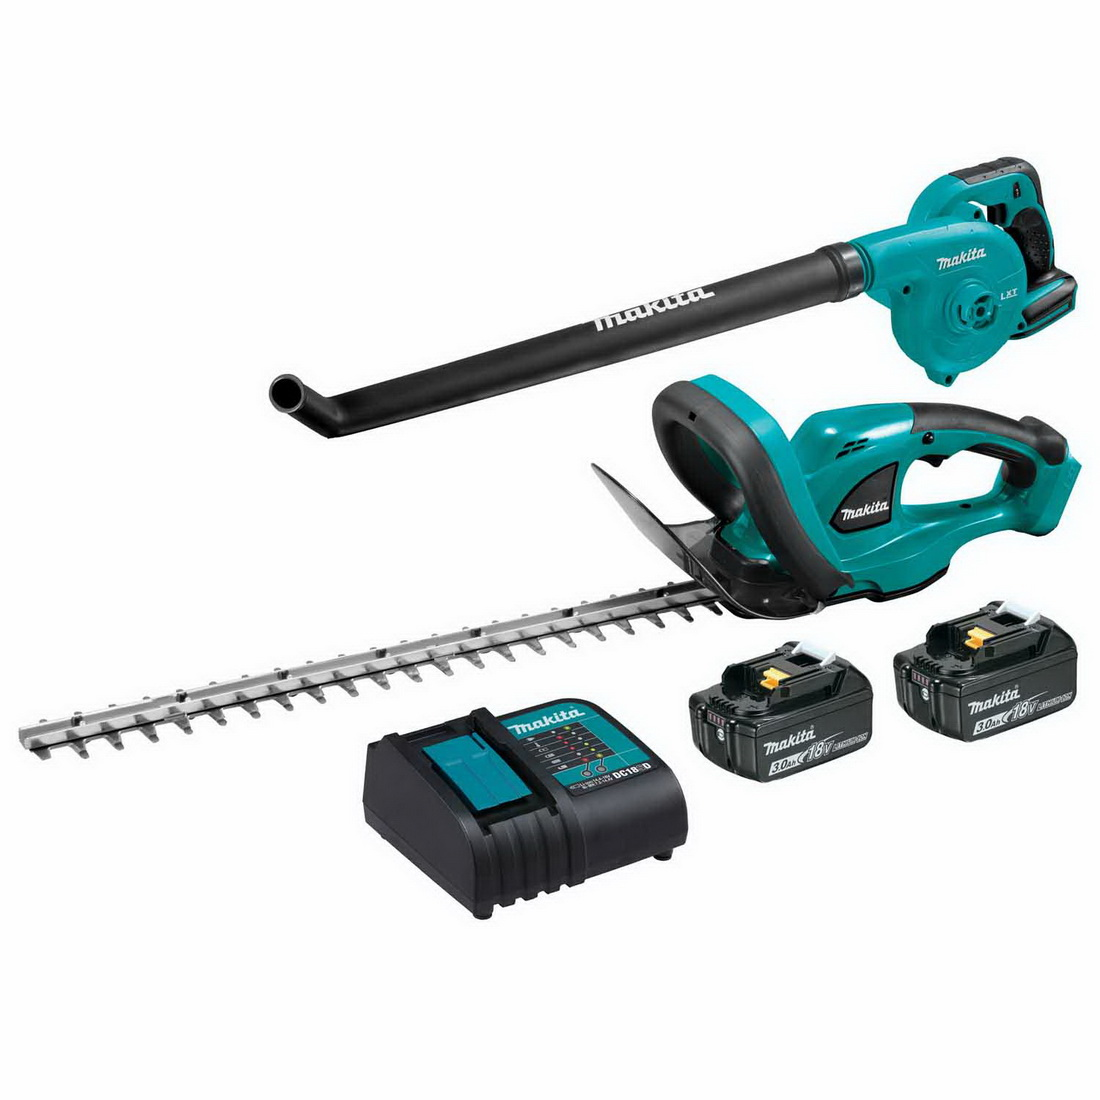 Lxt Li-Ion Hedge Trimmer & Blower Combo Kit 18V 3Ah